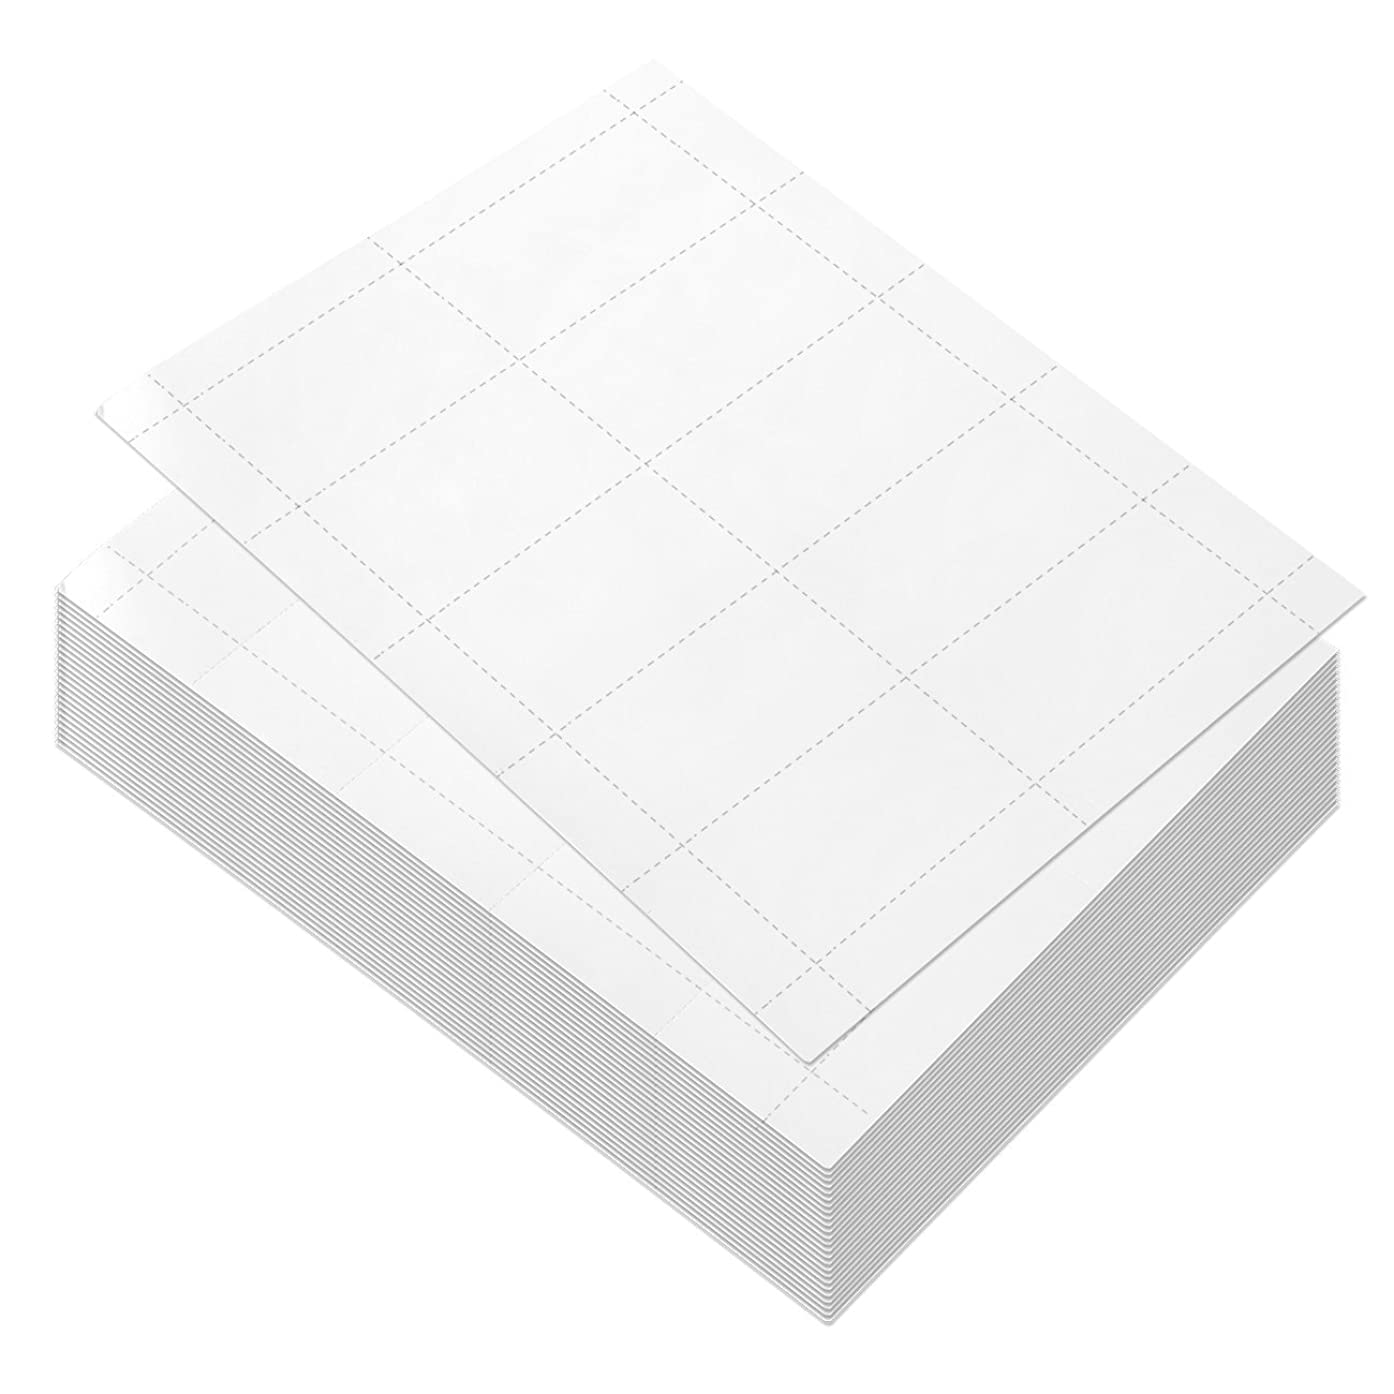 100 Sheets-Blank Business Card Paper - 1000 Business Card Stock for Inkjet and Laser Printers, 170gsm, White, 3.5 x 1.9 Inches